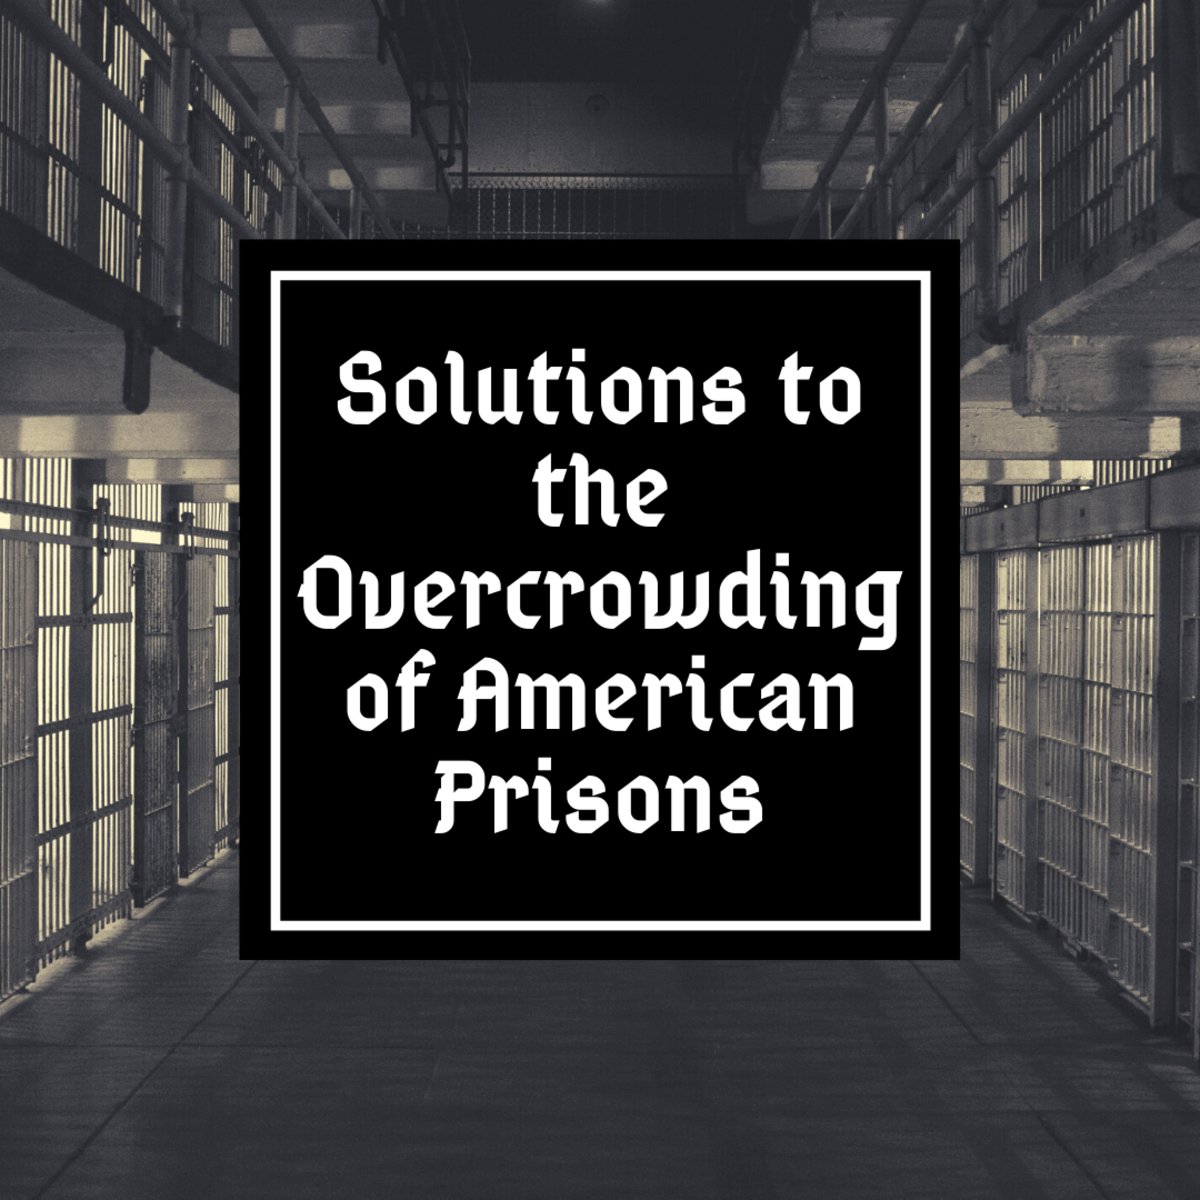 A Clear Solution to the Overcrowding of American Prisons